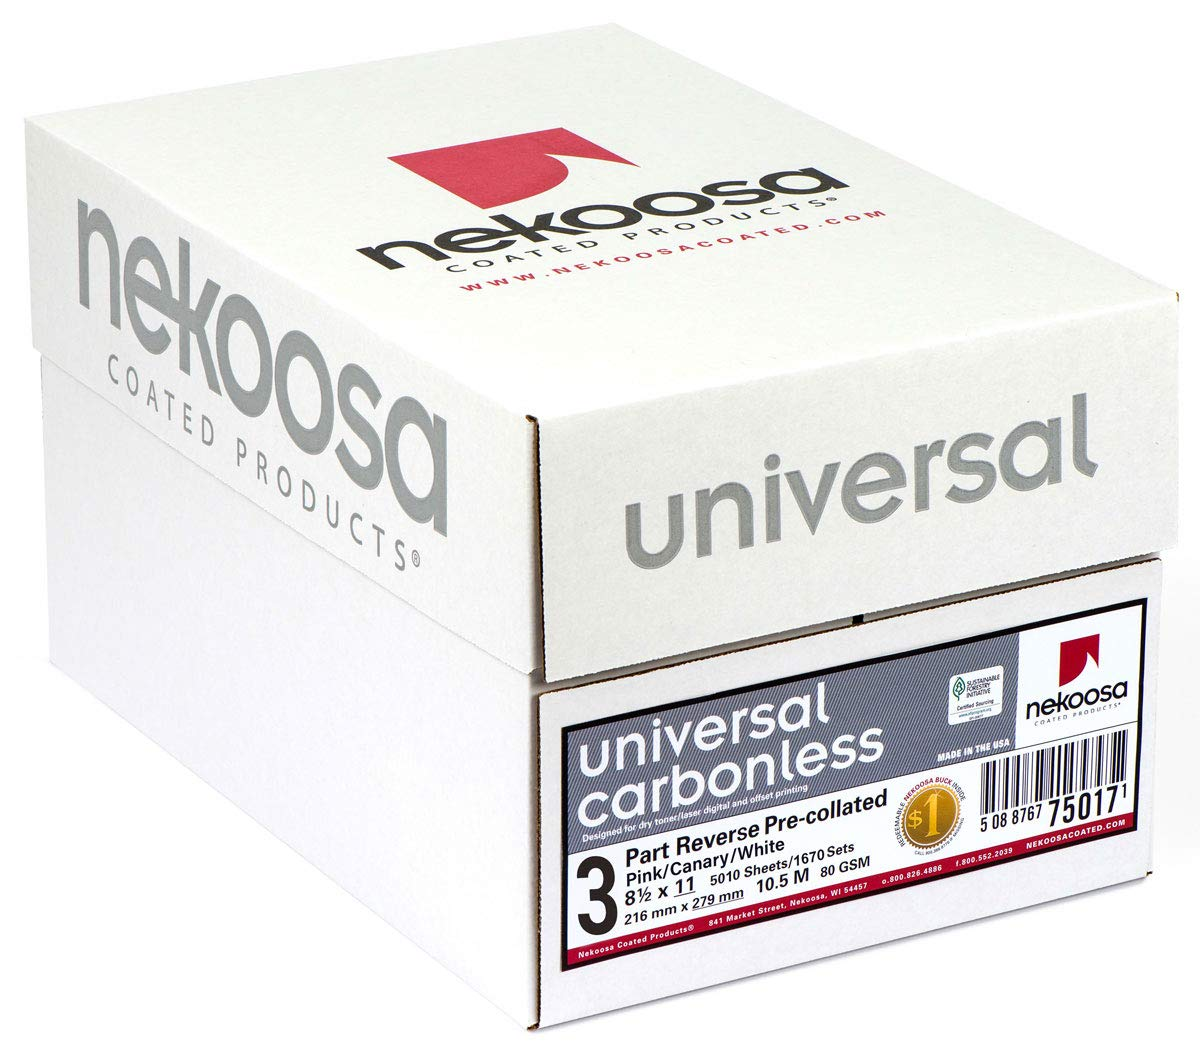 8.5 x 11 Nekoosa Universal Carbonless Paper, 3 Part Reverse (Bright White/Canary/Pink), 1670 Sets, 5010 Sheets, 10 Reams by PSD